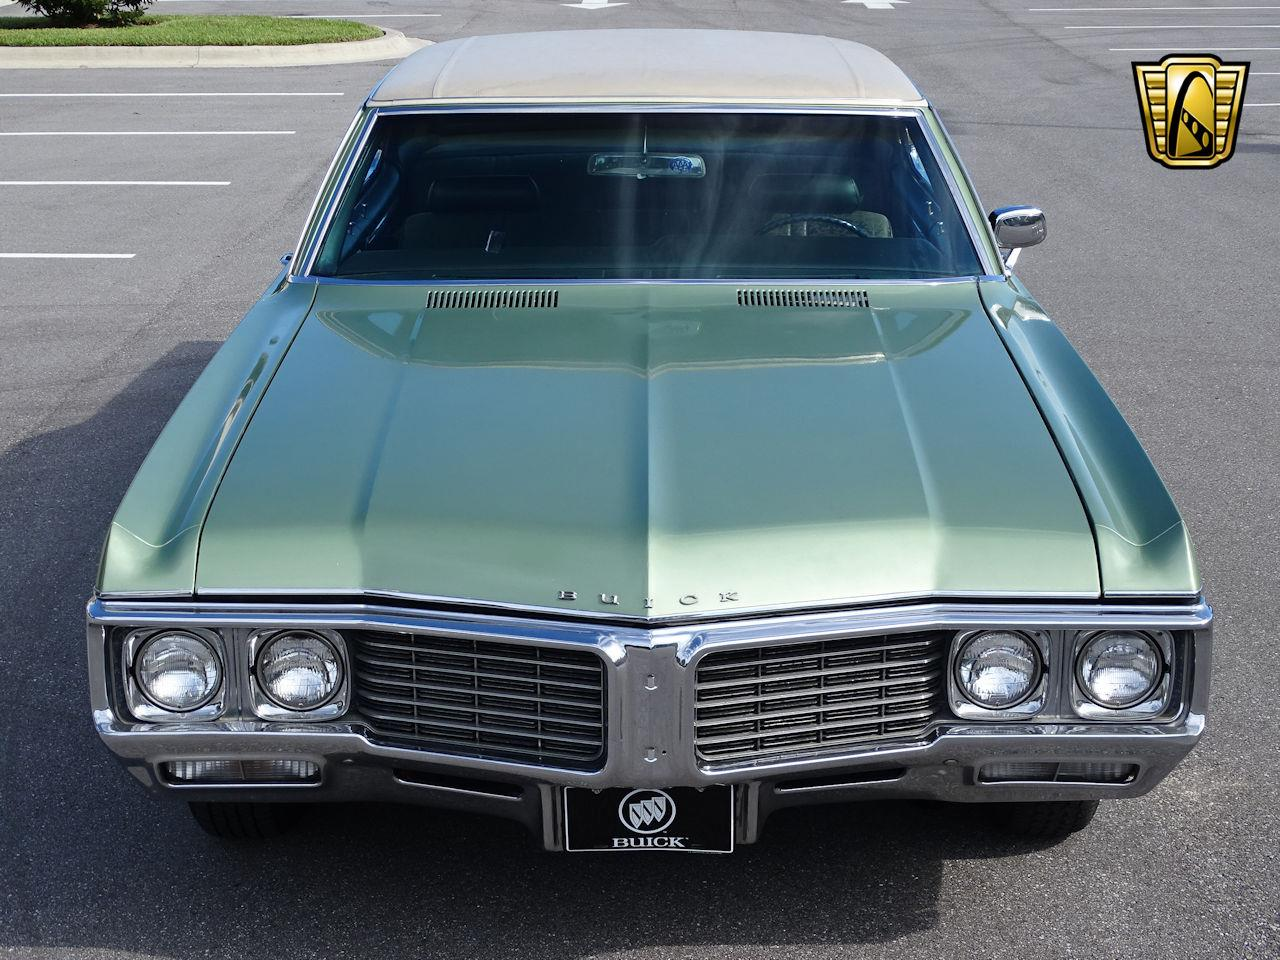 Large Picture of '70 Buick Electra located in Lake Mary Florida - $10,995.00 - KE2P